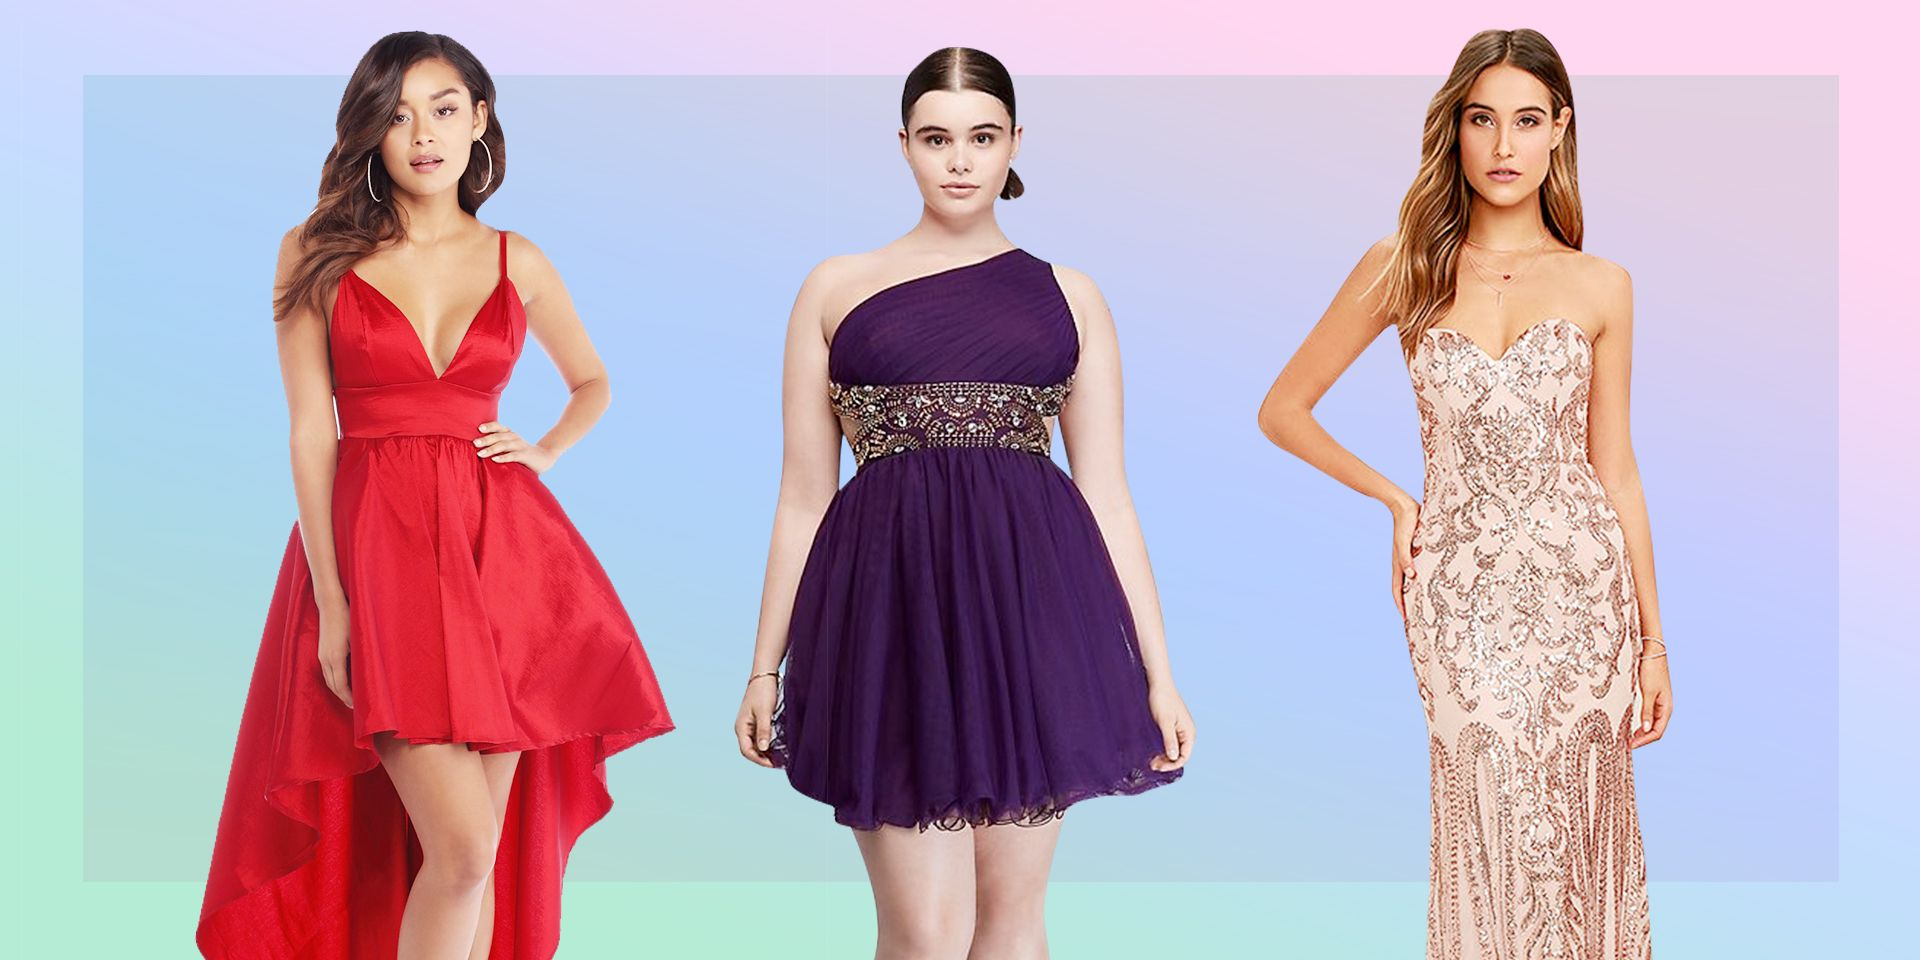 20 Best Cheap Prom Dresses 2018 - Where to Buy Affordable Prom Dresses